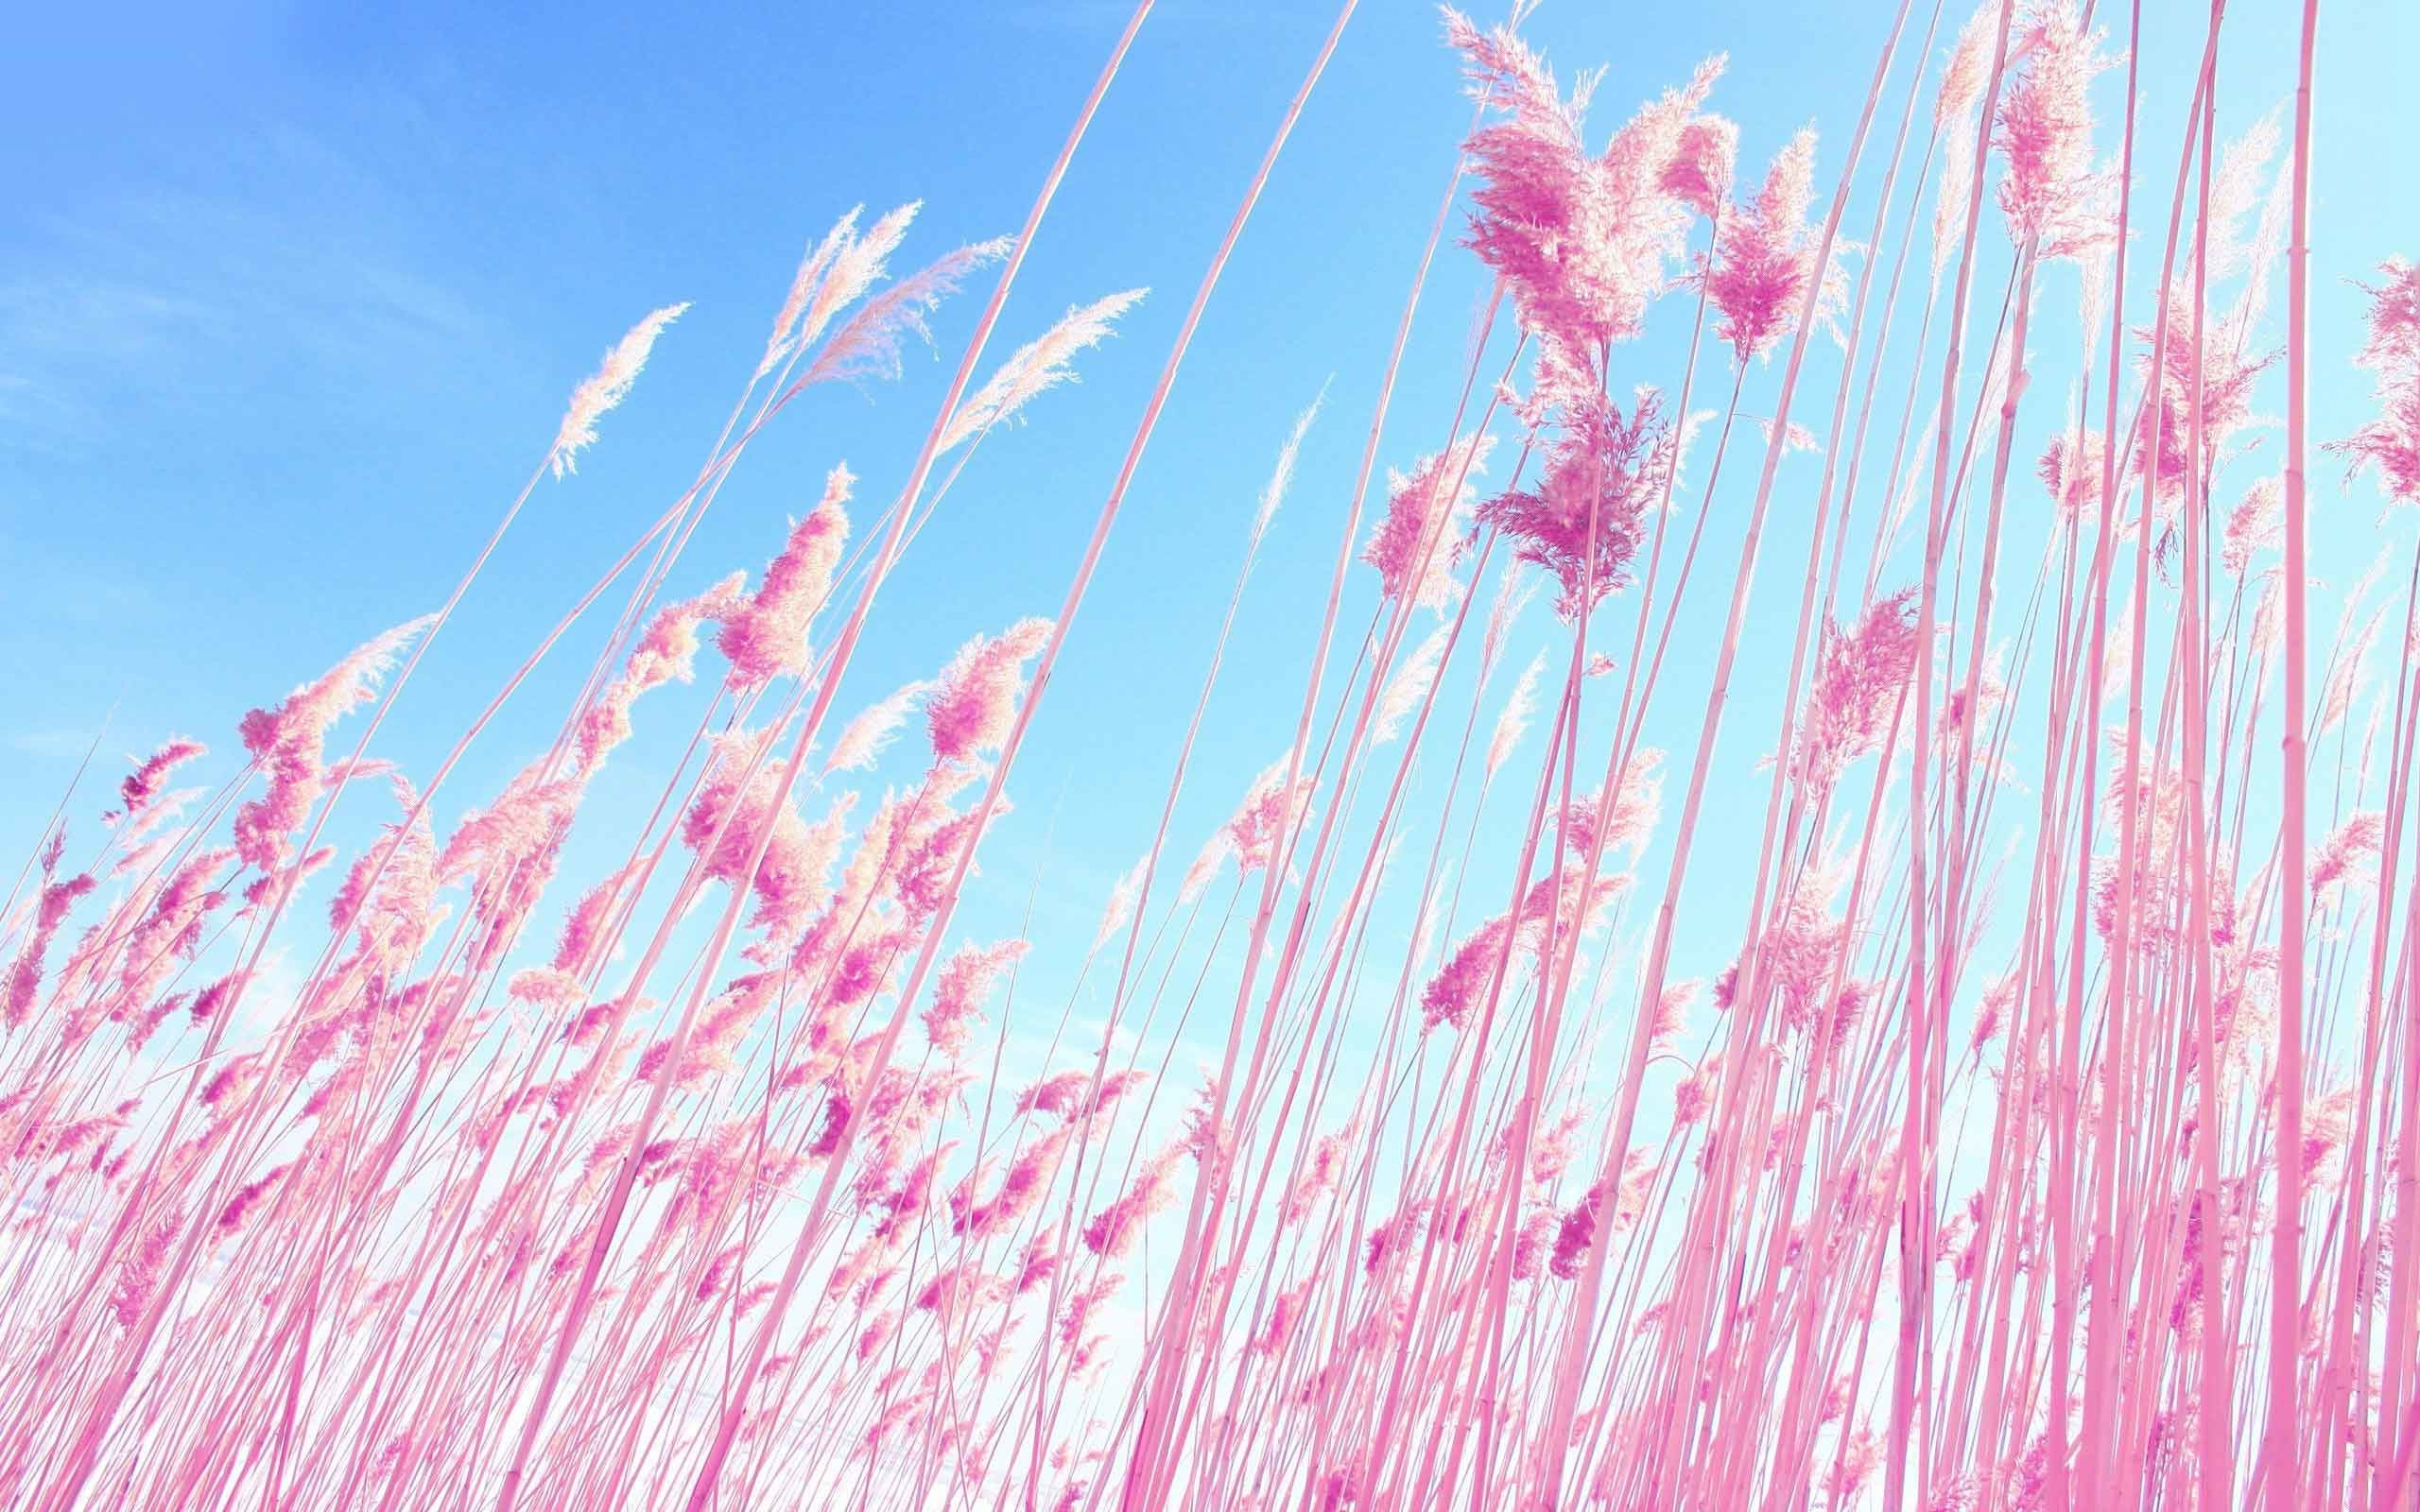 2560x1600 Plants Grass Dreamy Macro Pink Nature HD Live Wallpapers Download